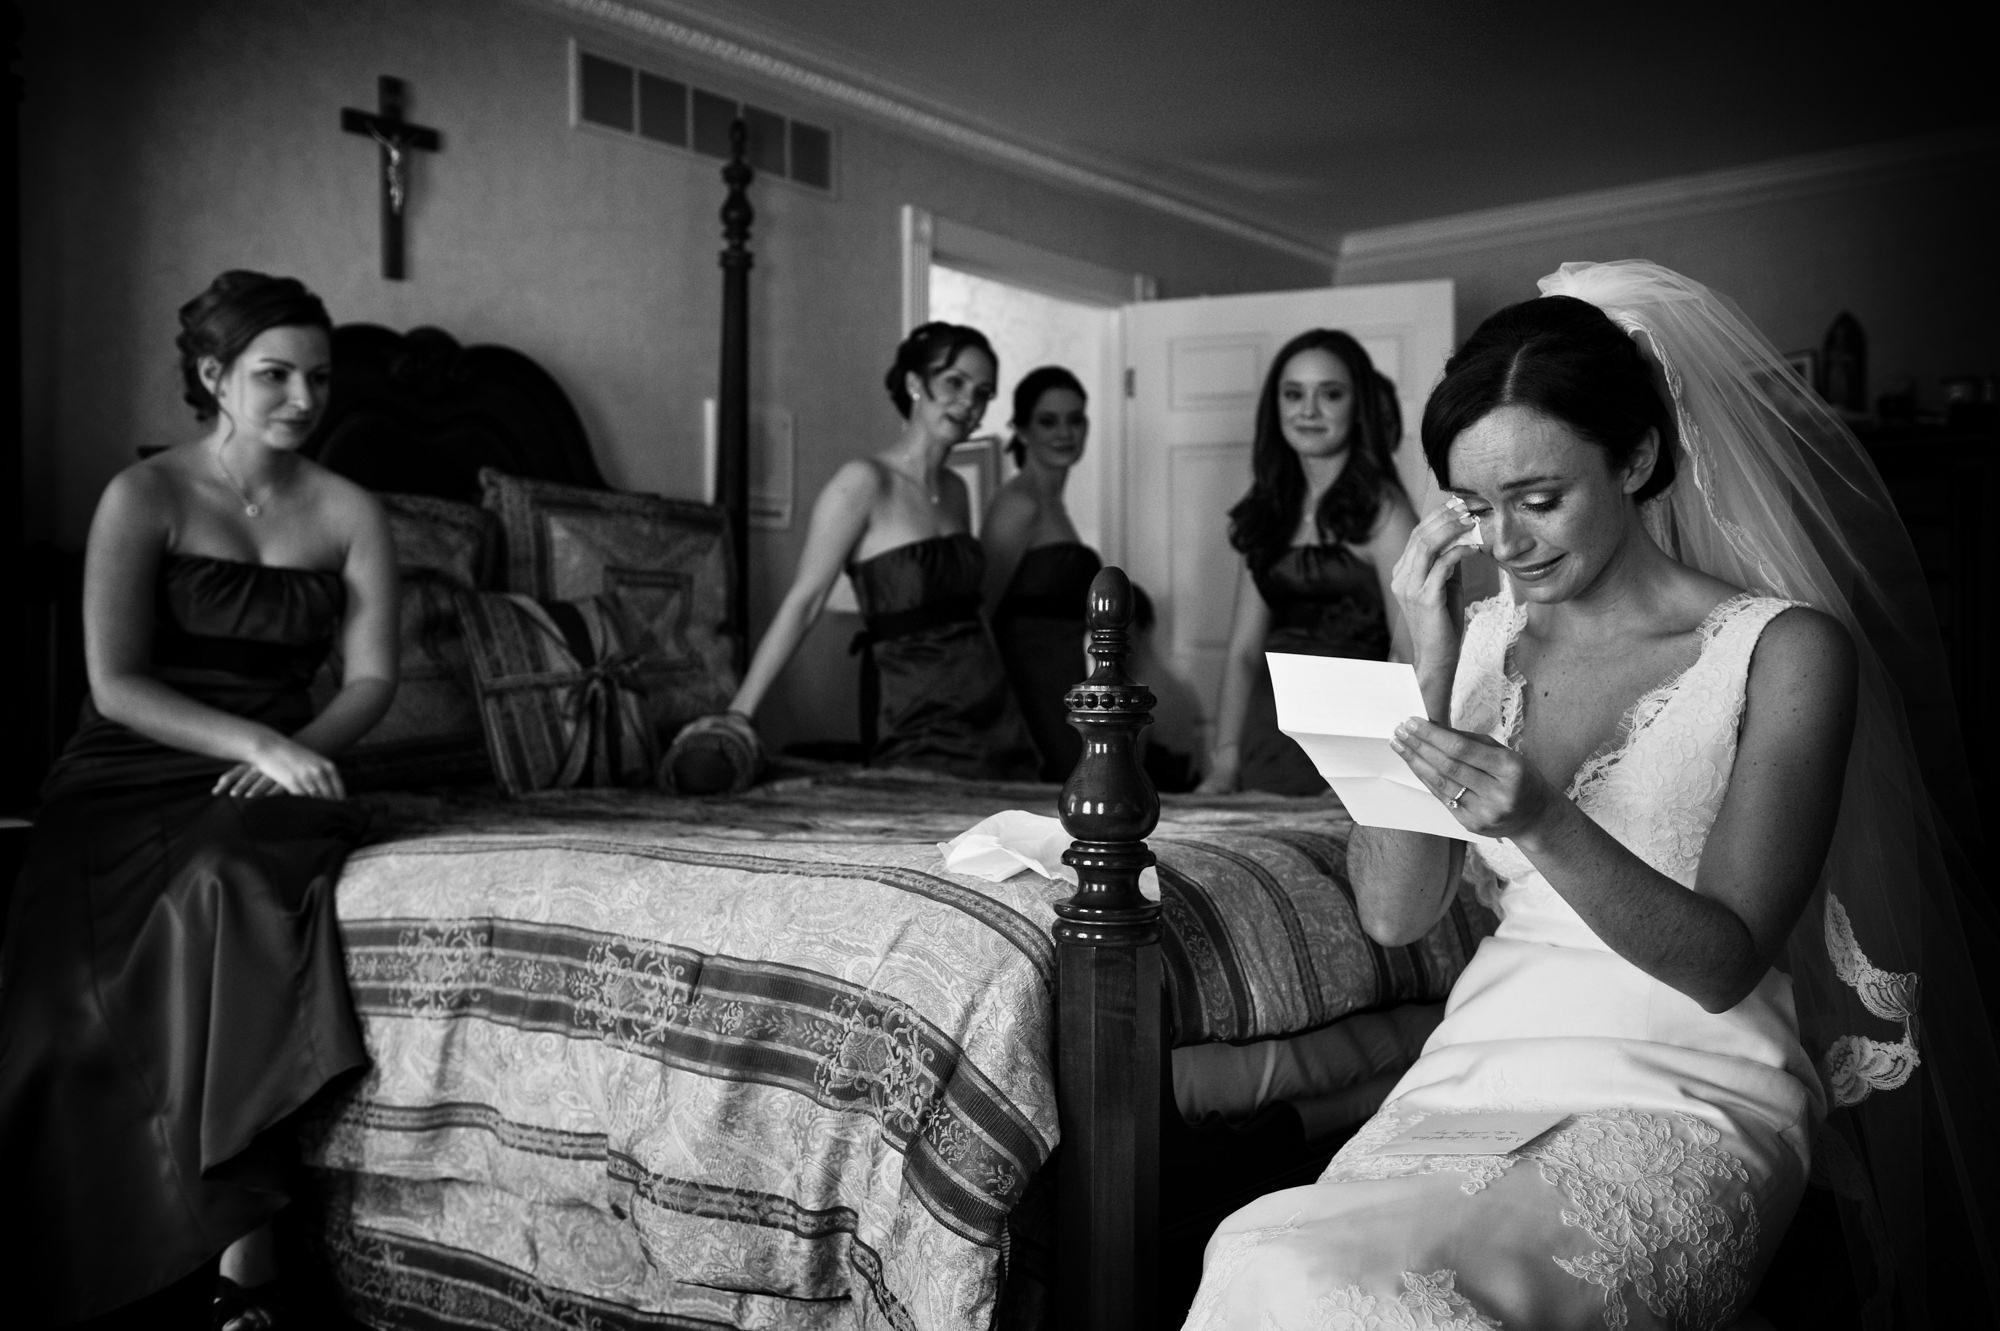 Bride tearing up reading letter from groom with bridesmaids watching, by Cliff Mautner